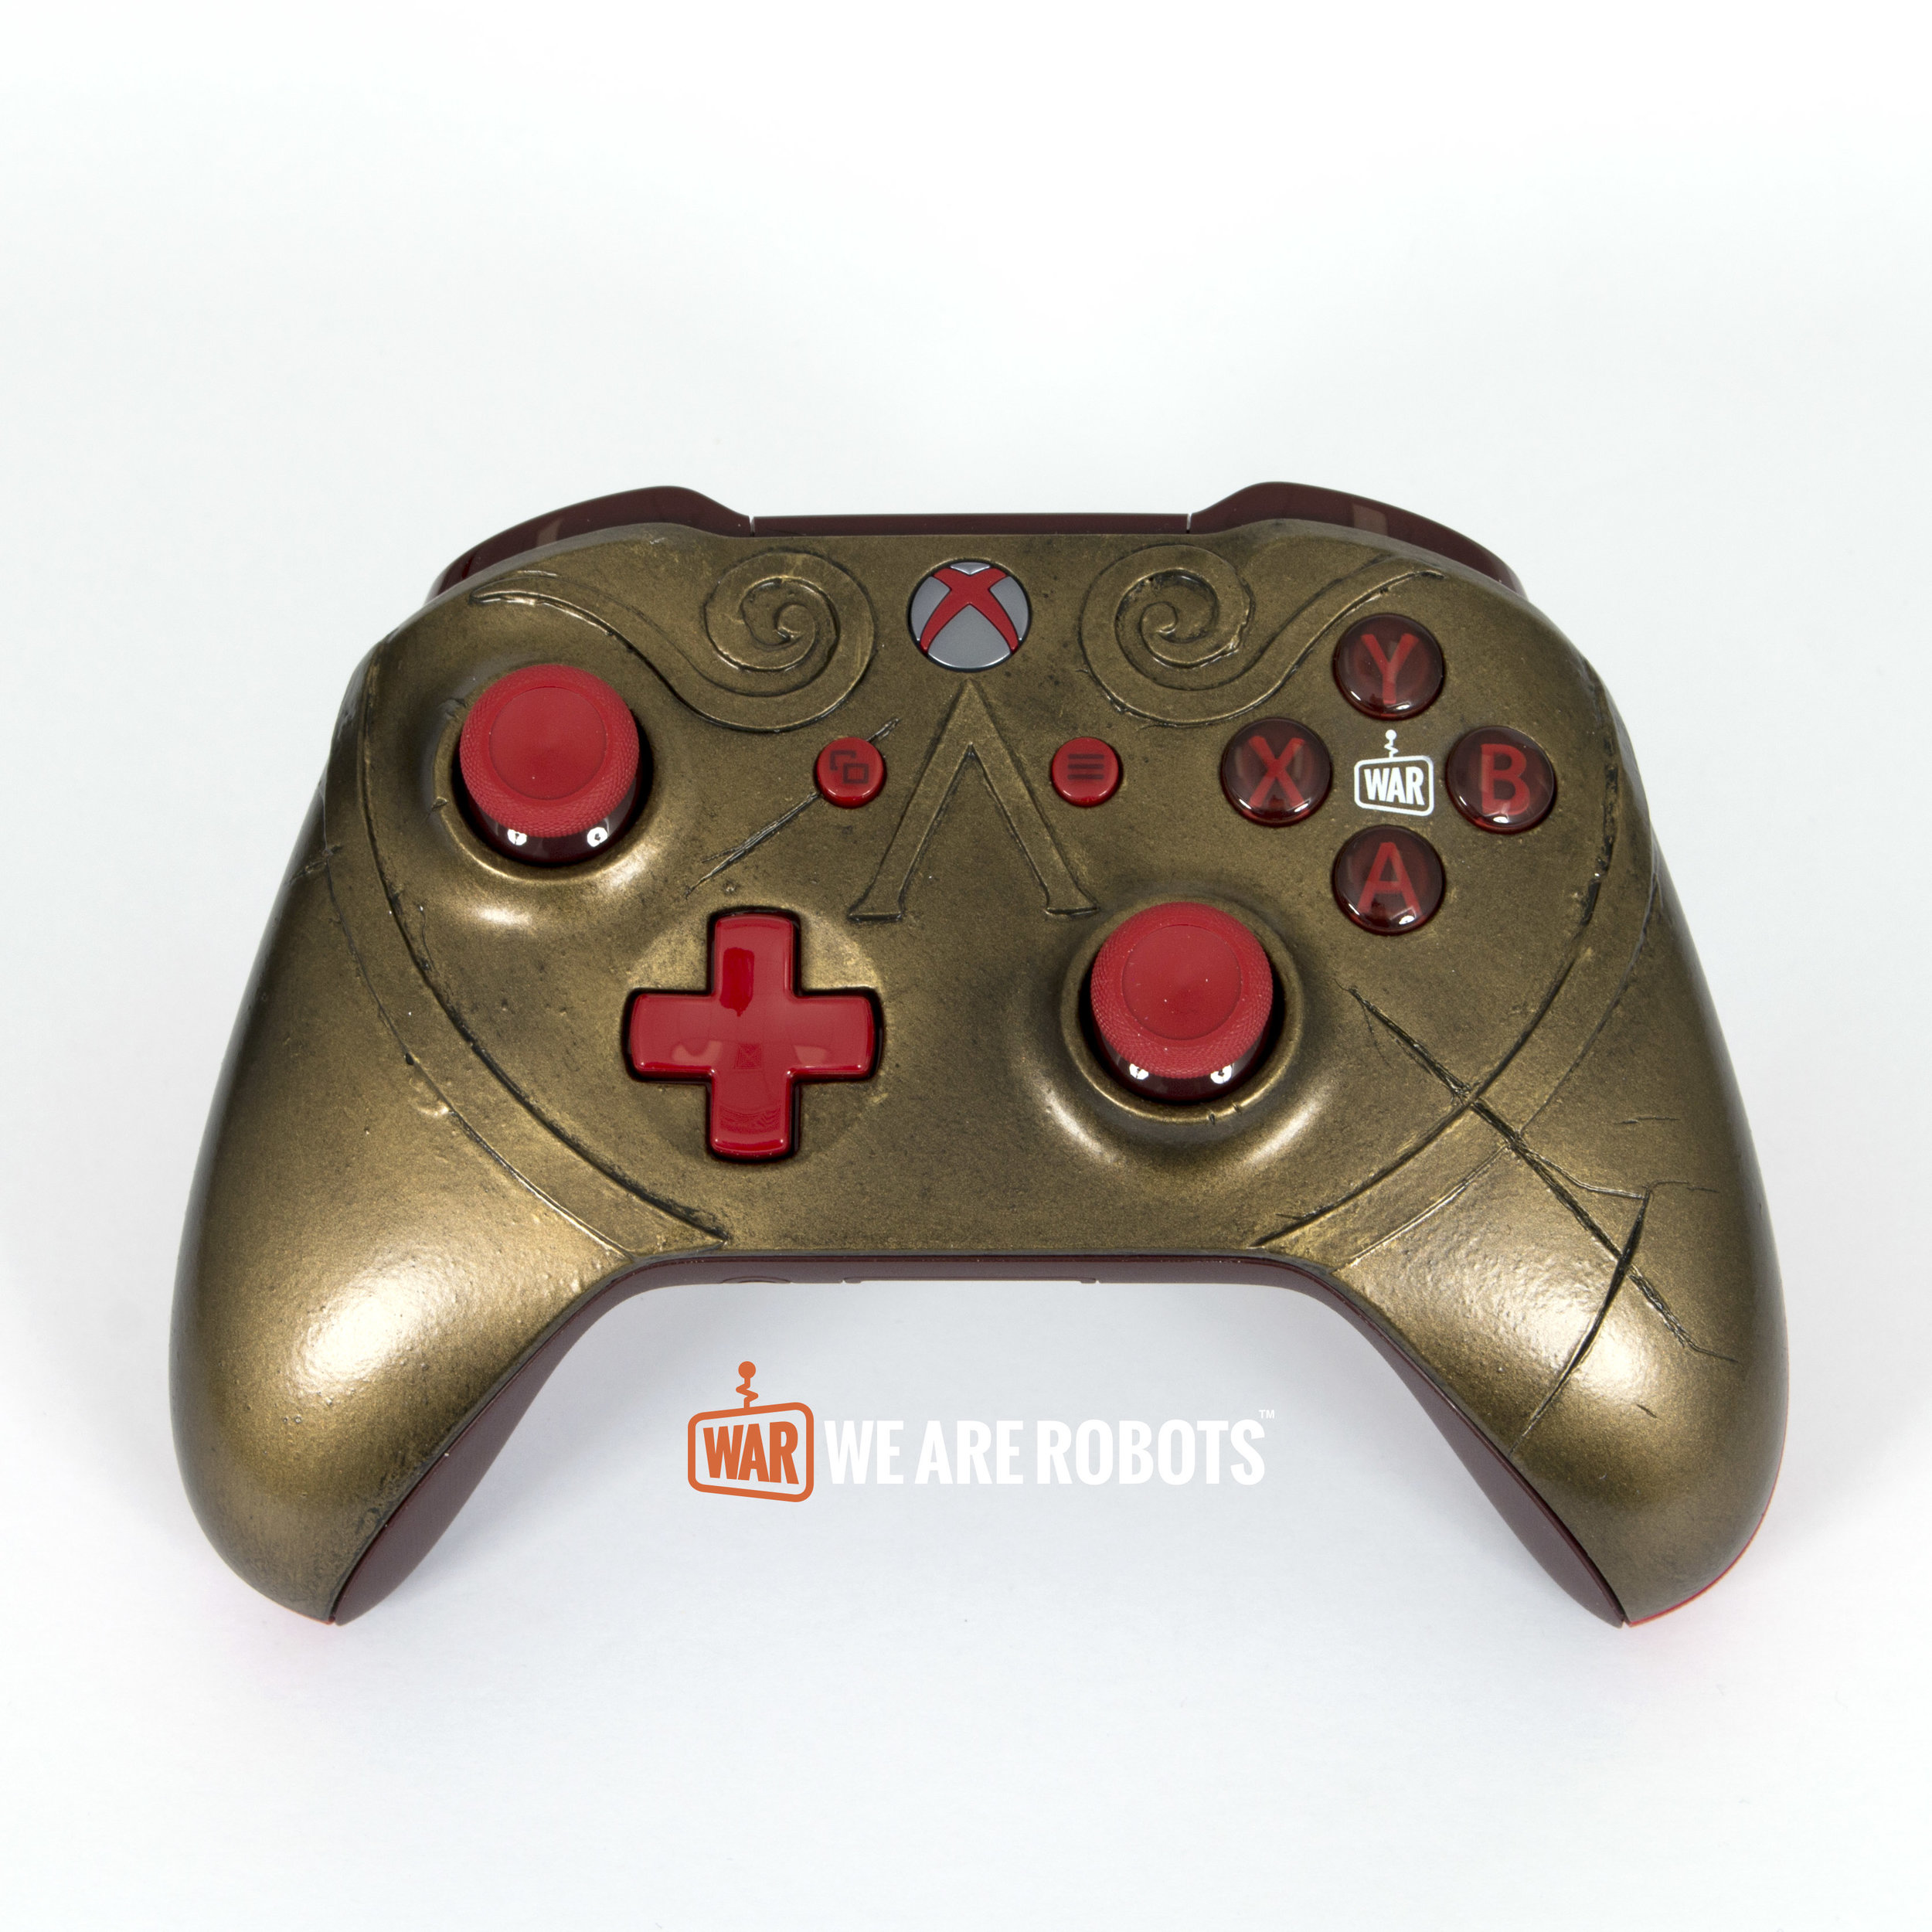 Assasins Creed Odyssey Custom Xbox One Controller Preorder